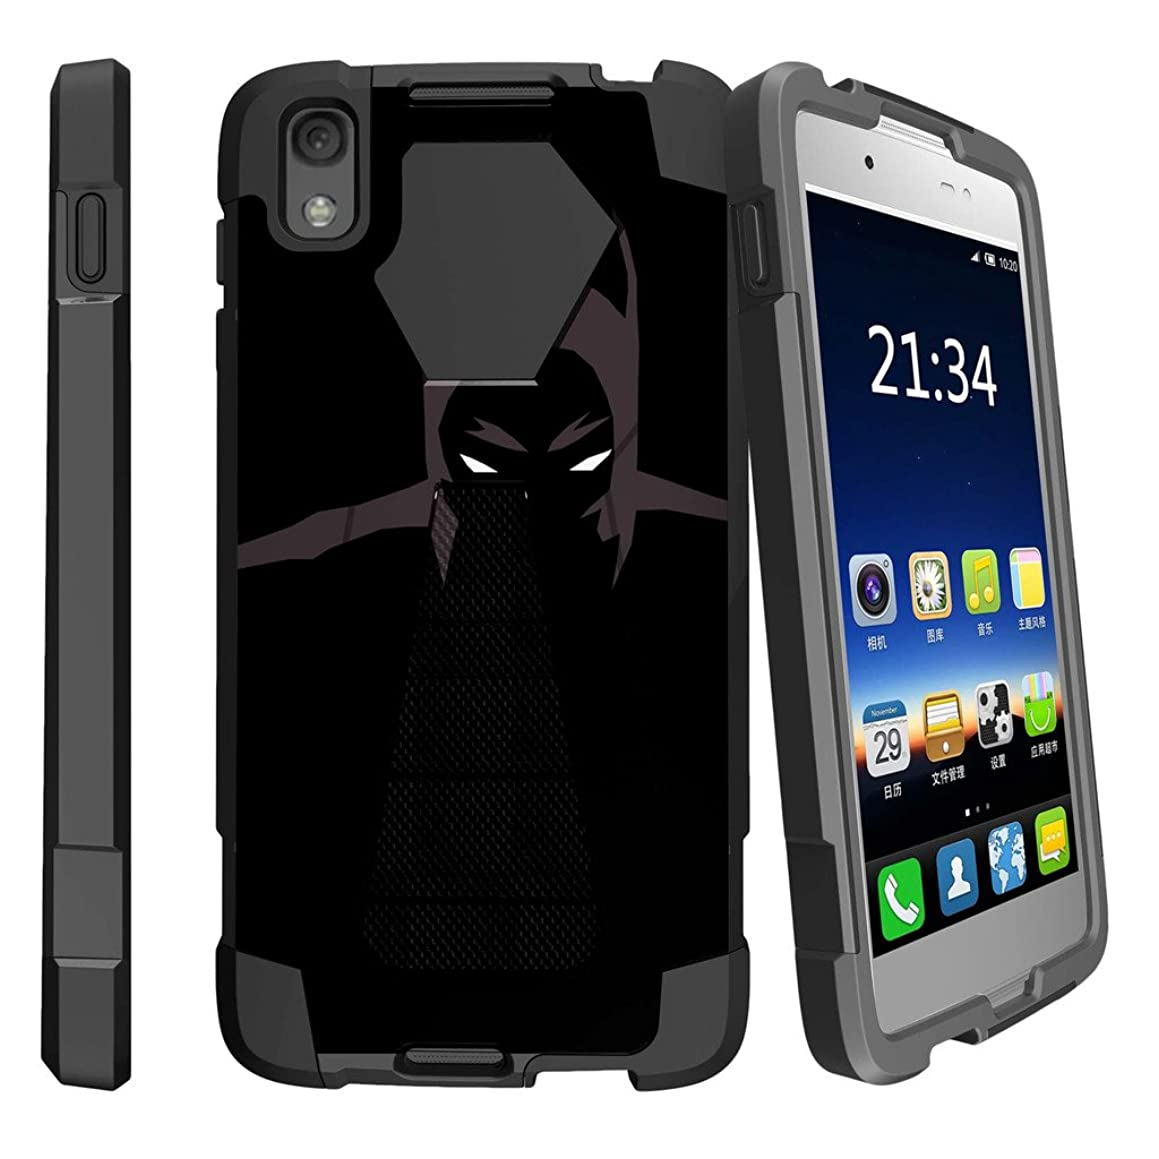 MINITURTLE Compatible with Alcatel Idol 4 / Nitro 49 Custom Phone Case Dual Layer [Shock Absorbing] Protection Hybrid Stand Rubberized Hard PC/Silicone Case Cover - Dark Knight